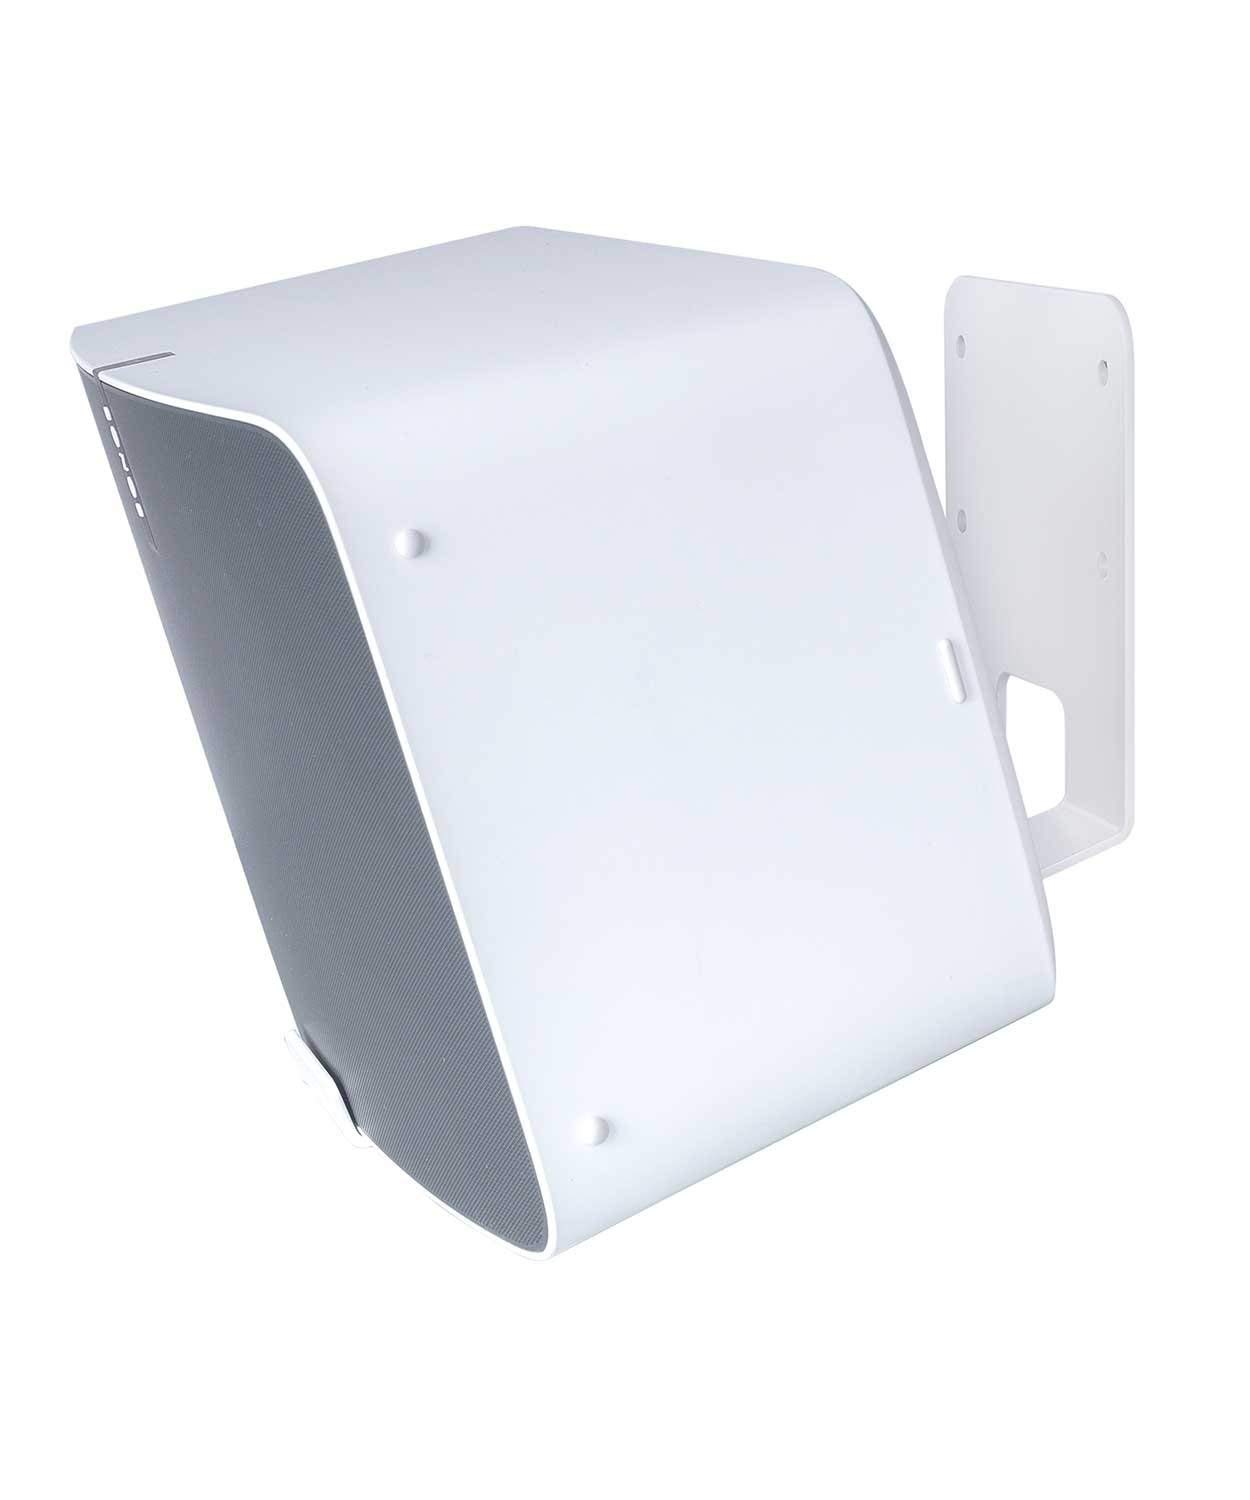 Vebos wall mount Sonos Play 5 gen 2 white 20 degrees and optimal sound experience in every room - Compatible with Sonos Play 5